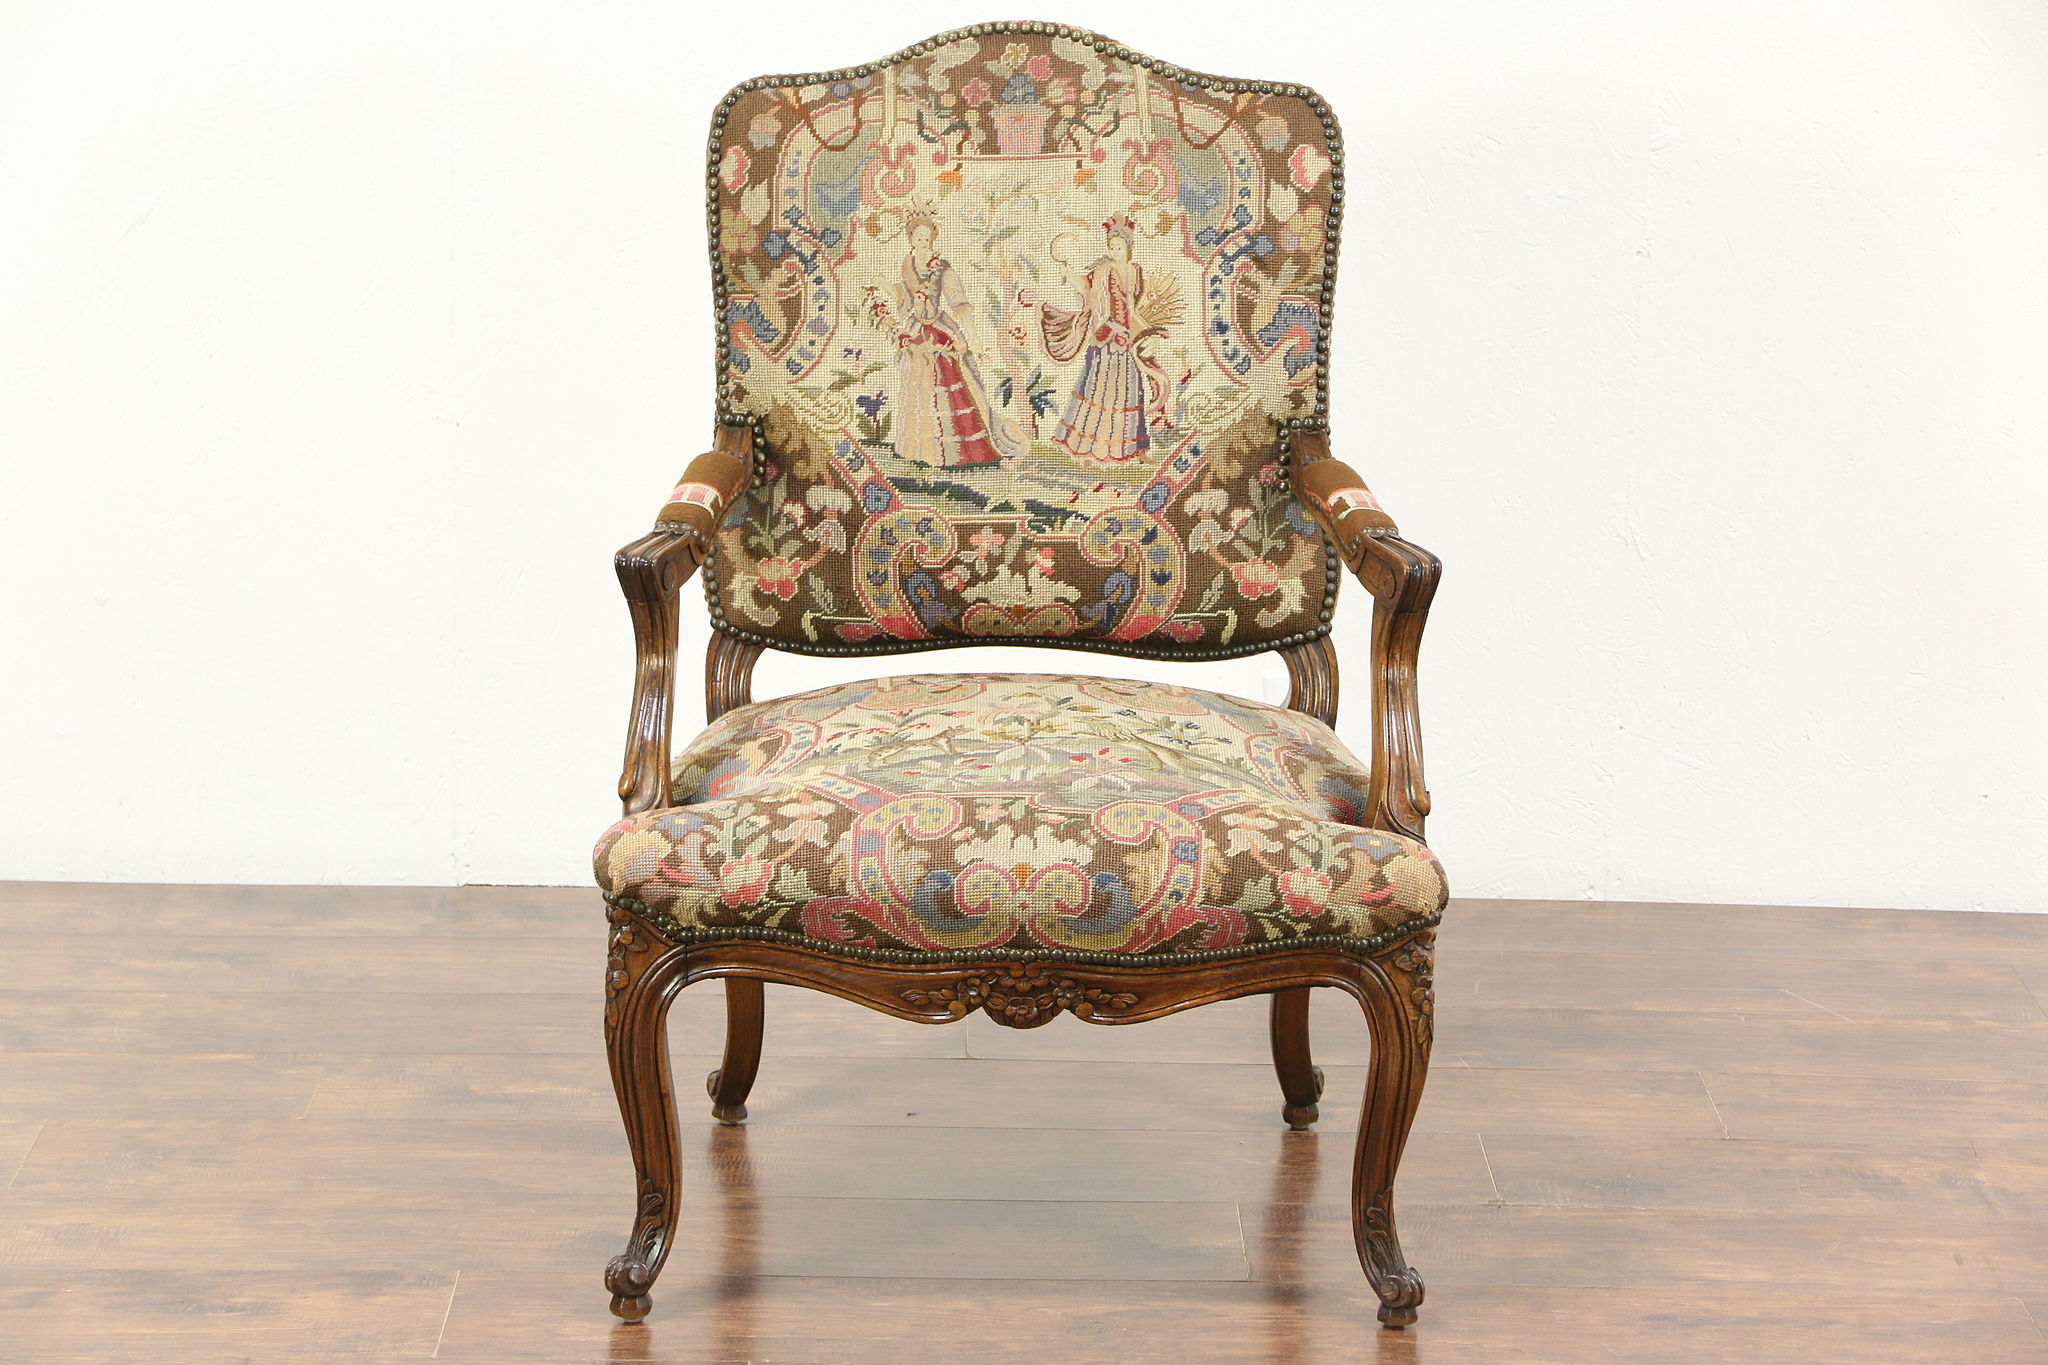 Antique Hand Carved French Chair, Needlepoint U0026 Petit Point Ladies U0026 Animals